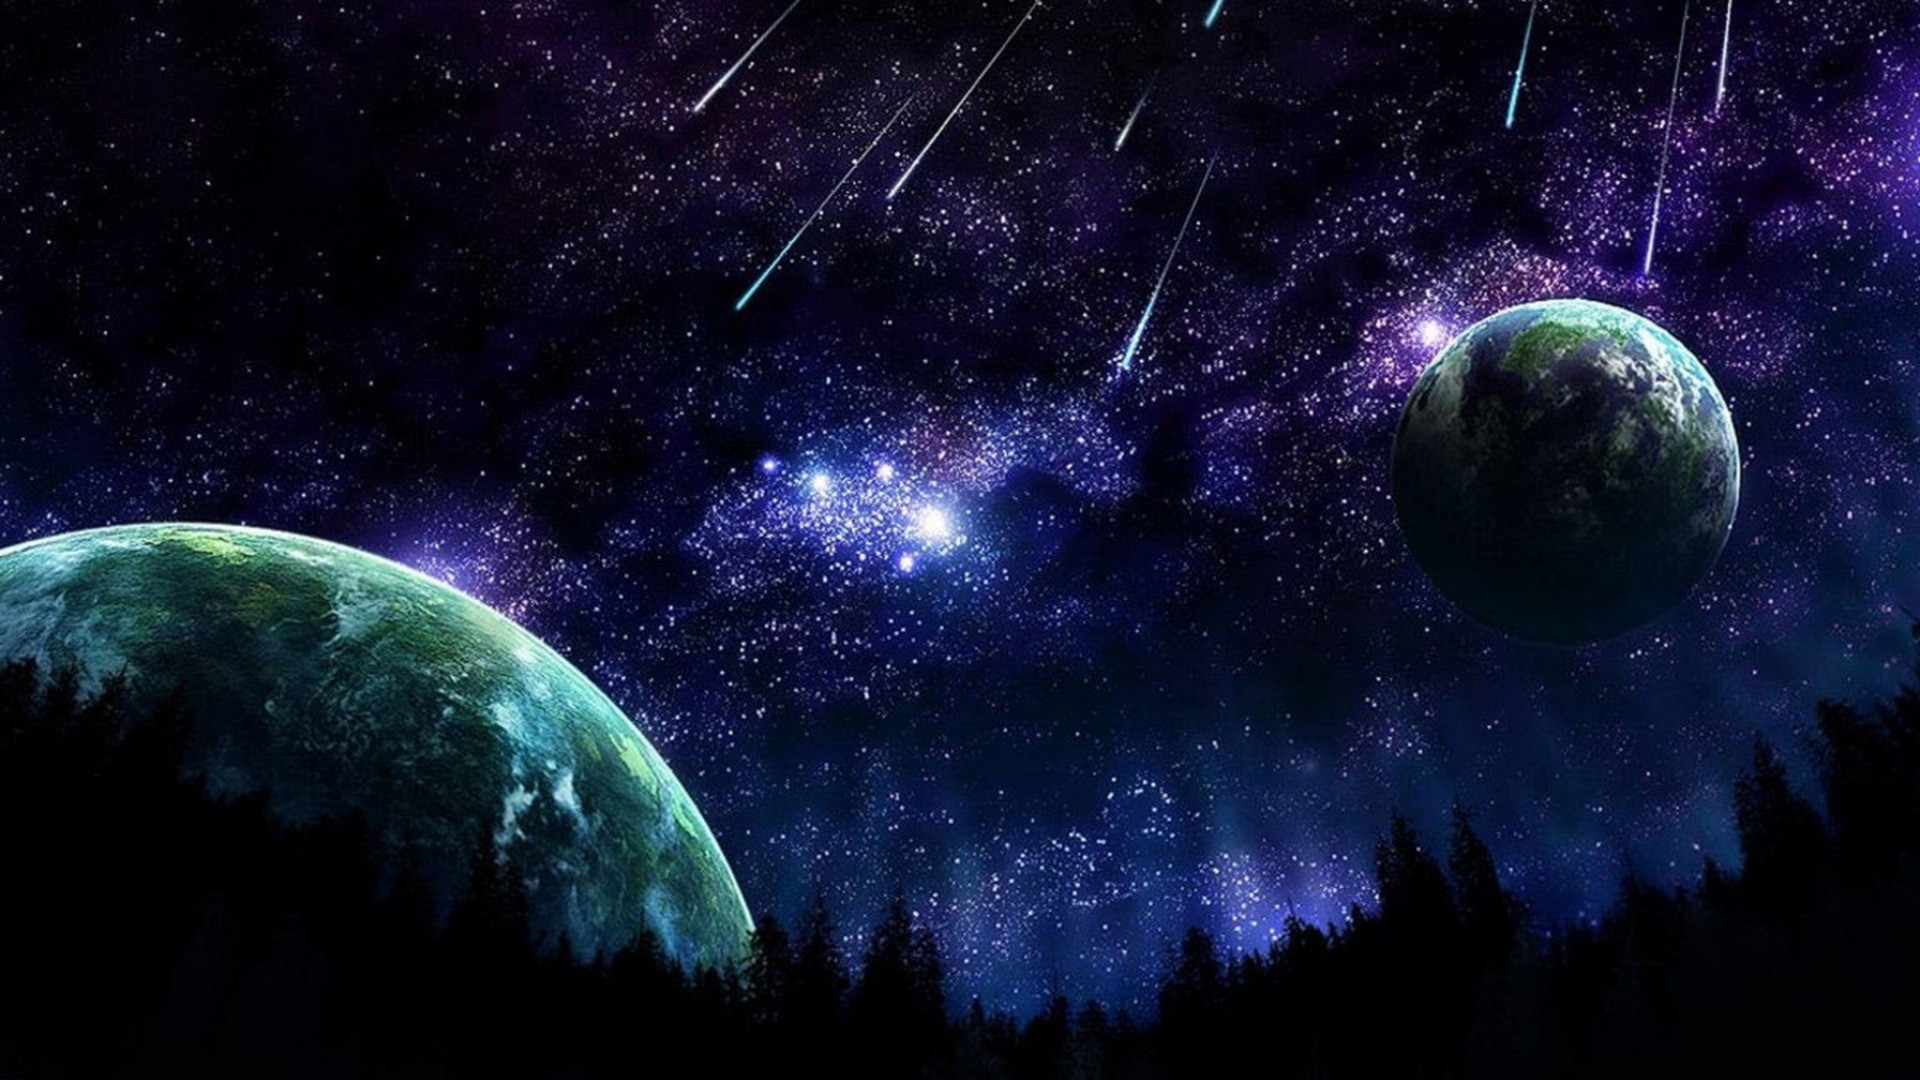 space wallpaper real nature - photo #8